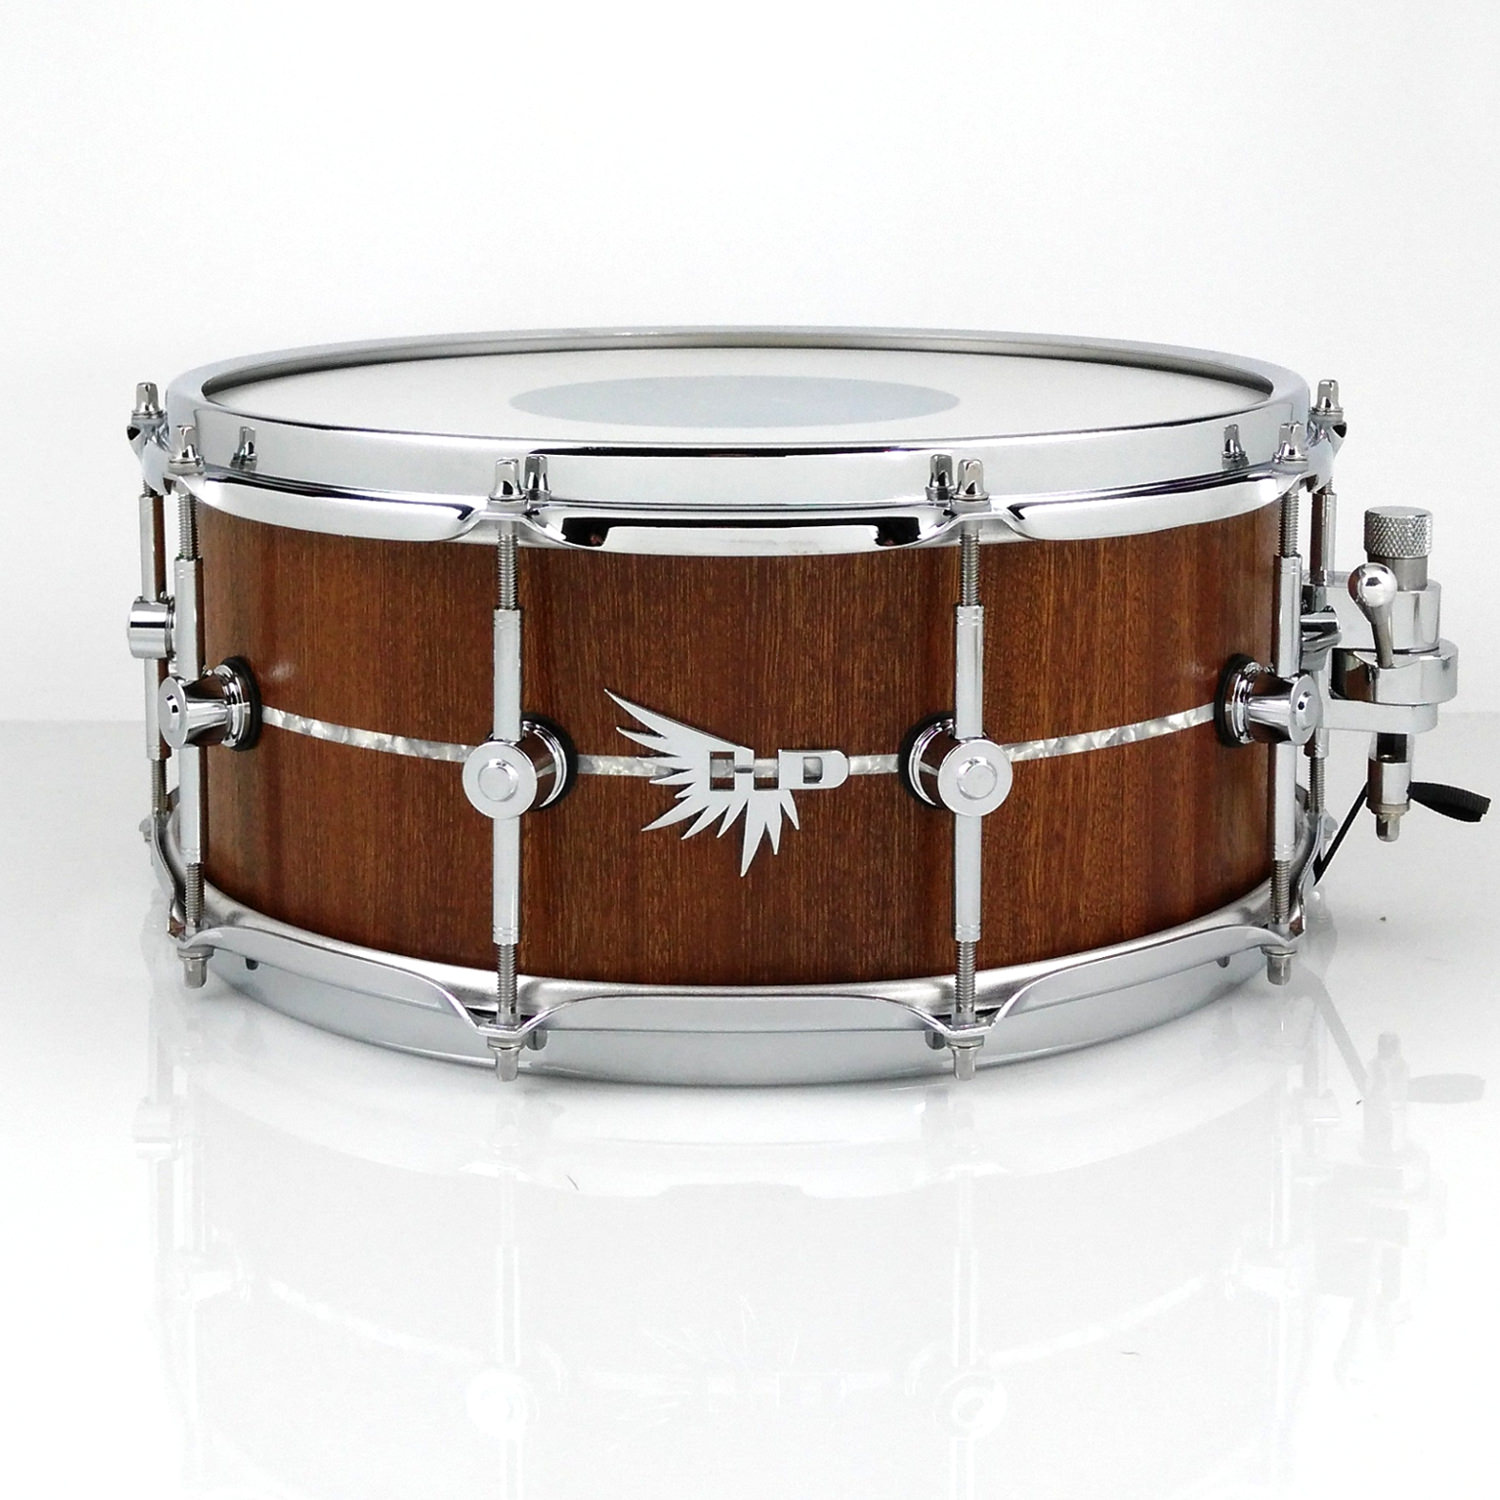 High End Snare Drum Hendrix stave white marine pearl inlay Sapele